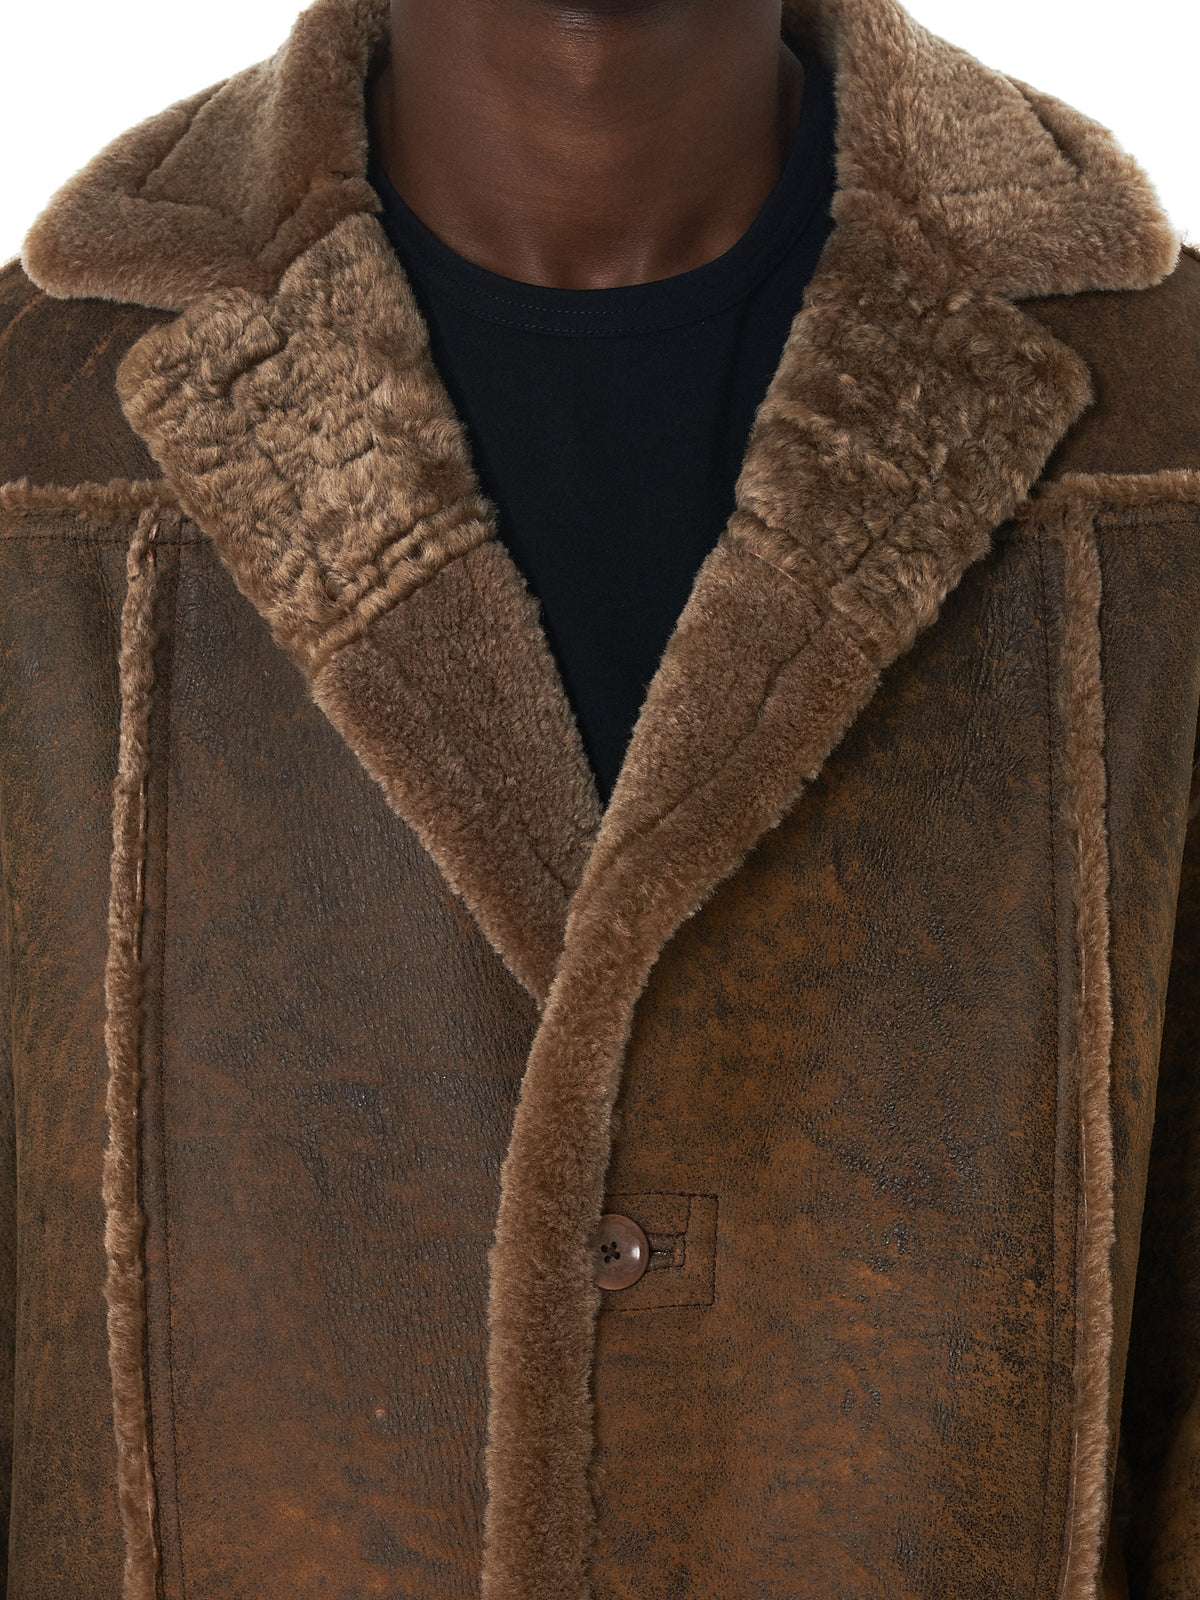 NAHMIAS Shearling Coat - Hlorenzo Detail